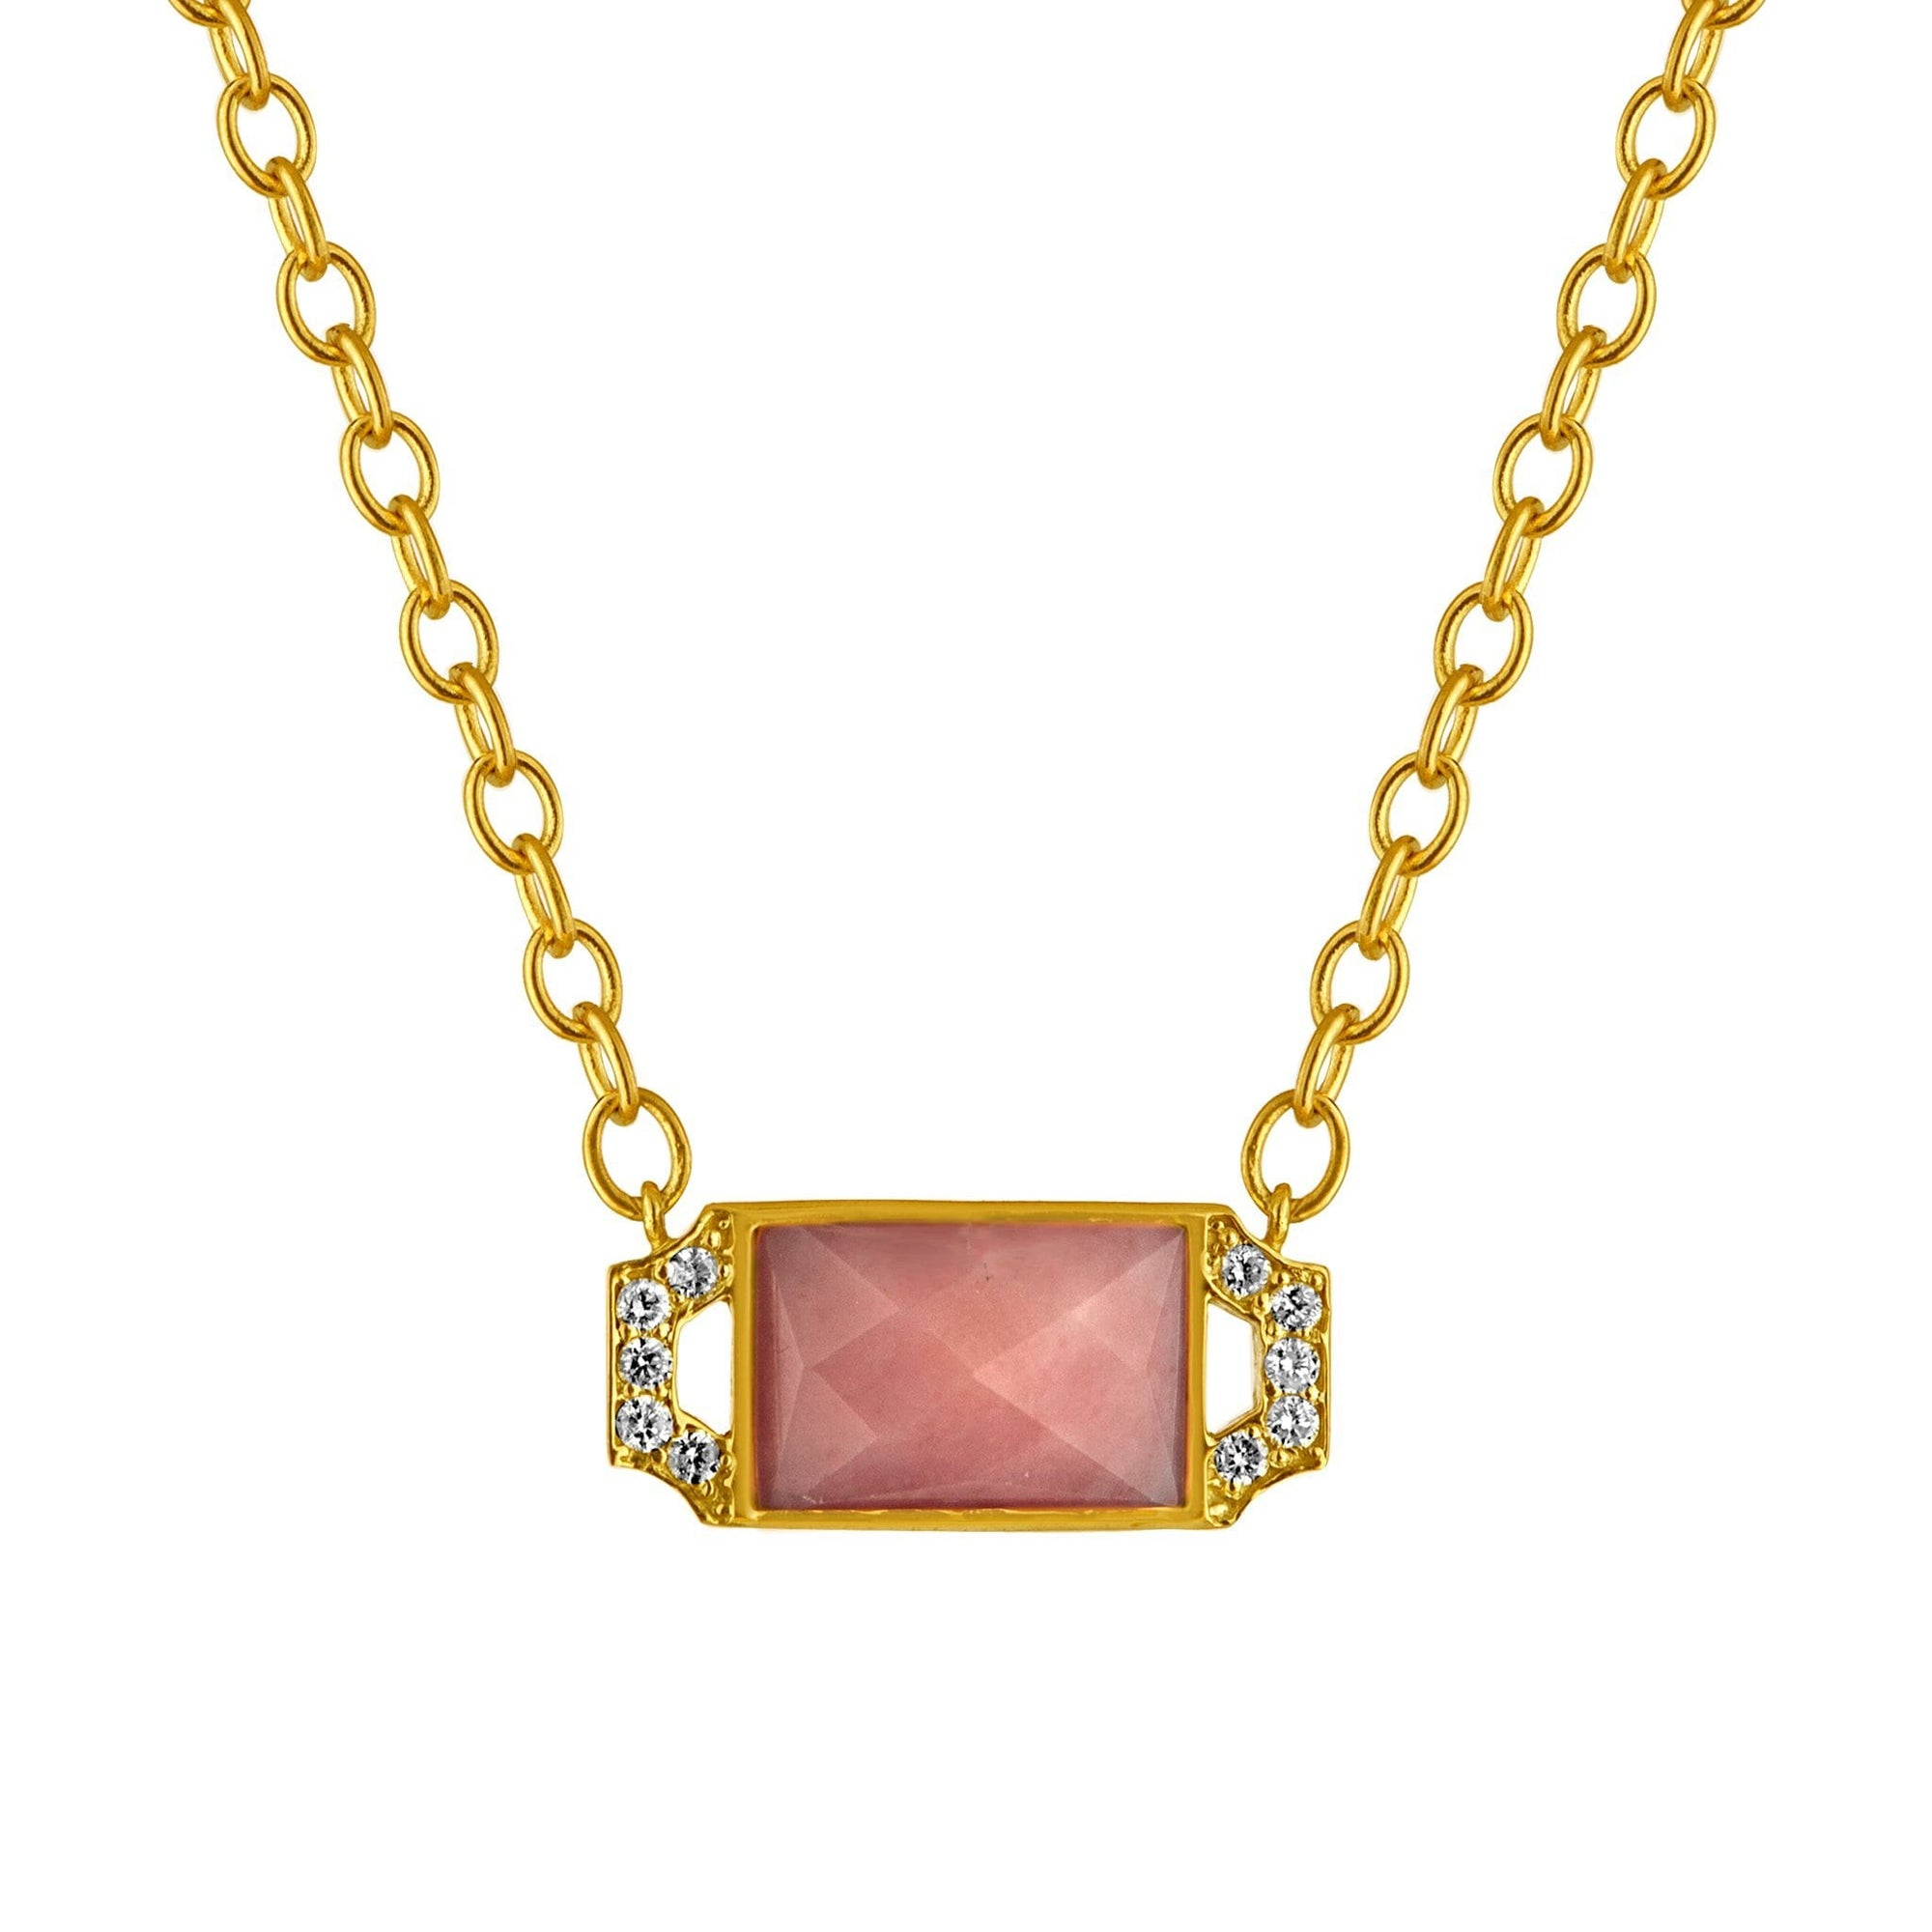 Edge Petite Pendant Necklace: 18k Gold, Pink Opal, Diamonds